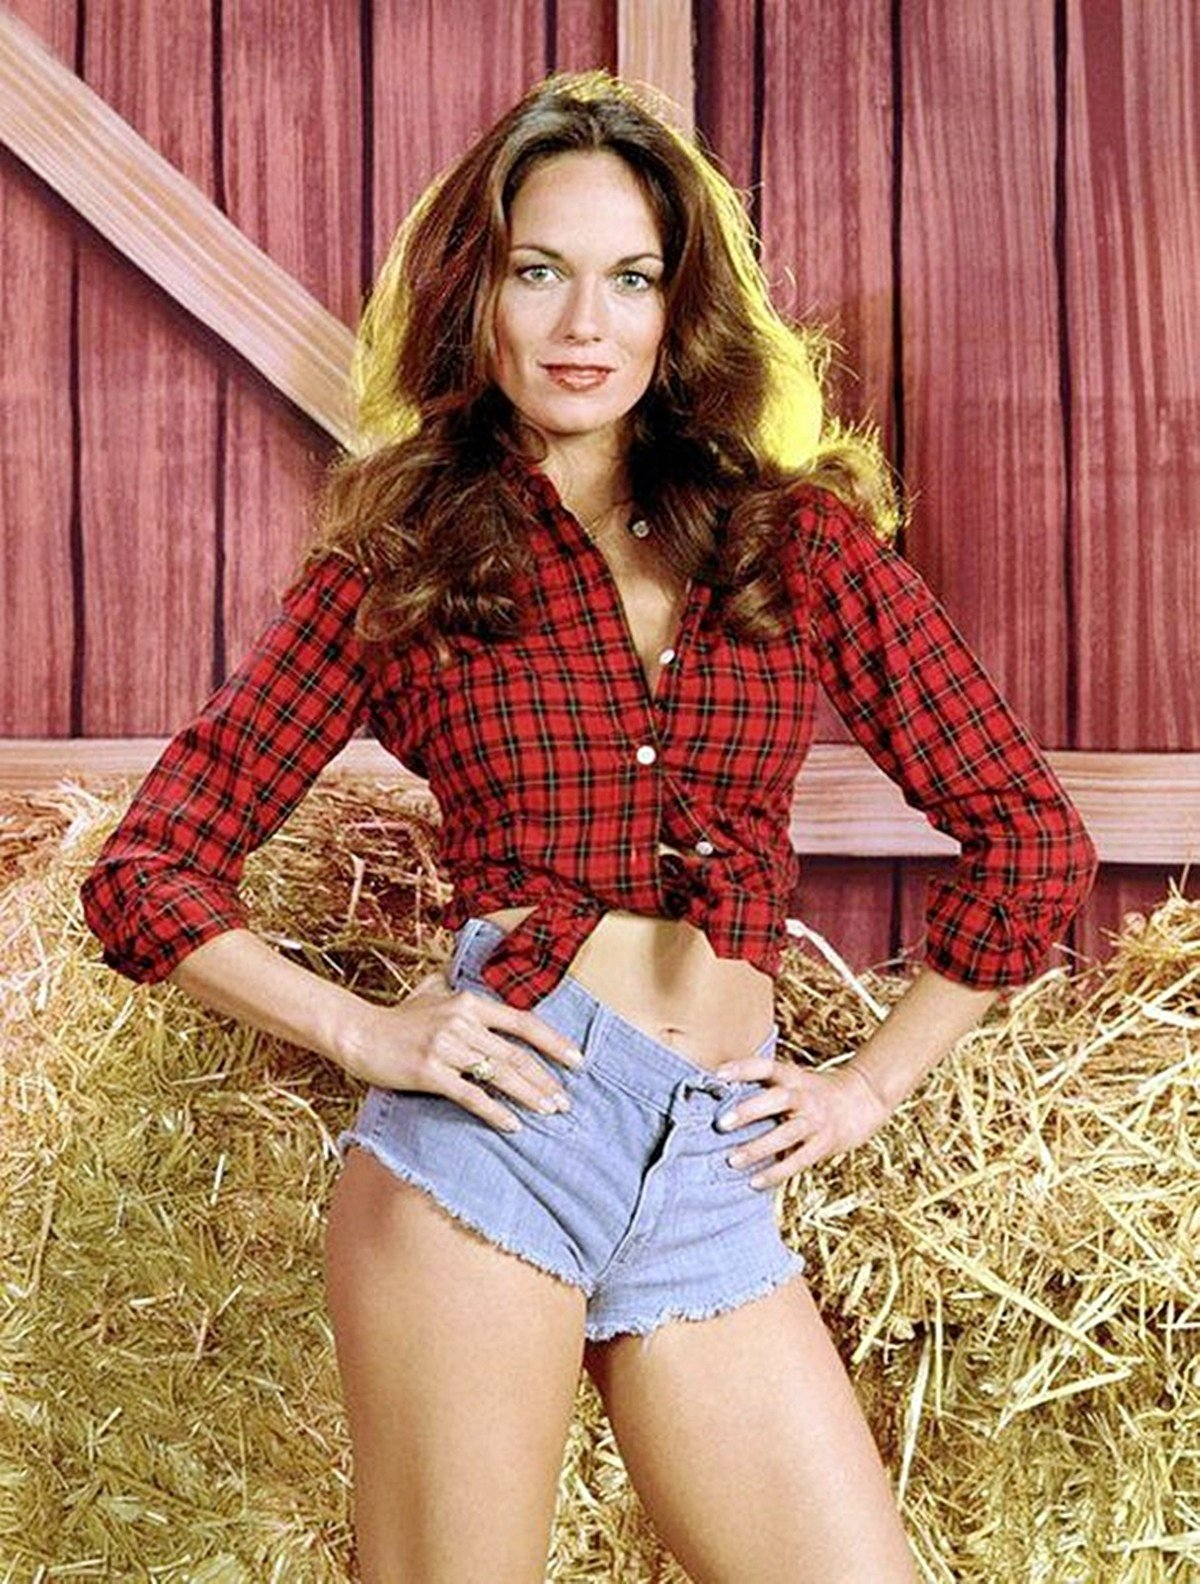 Catherine Bach wearing her famous denim shorts as Daisy Duke in The Dukes of Hazard